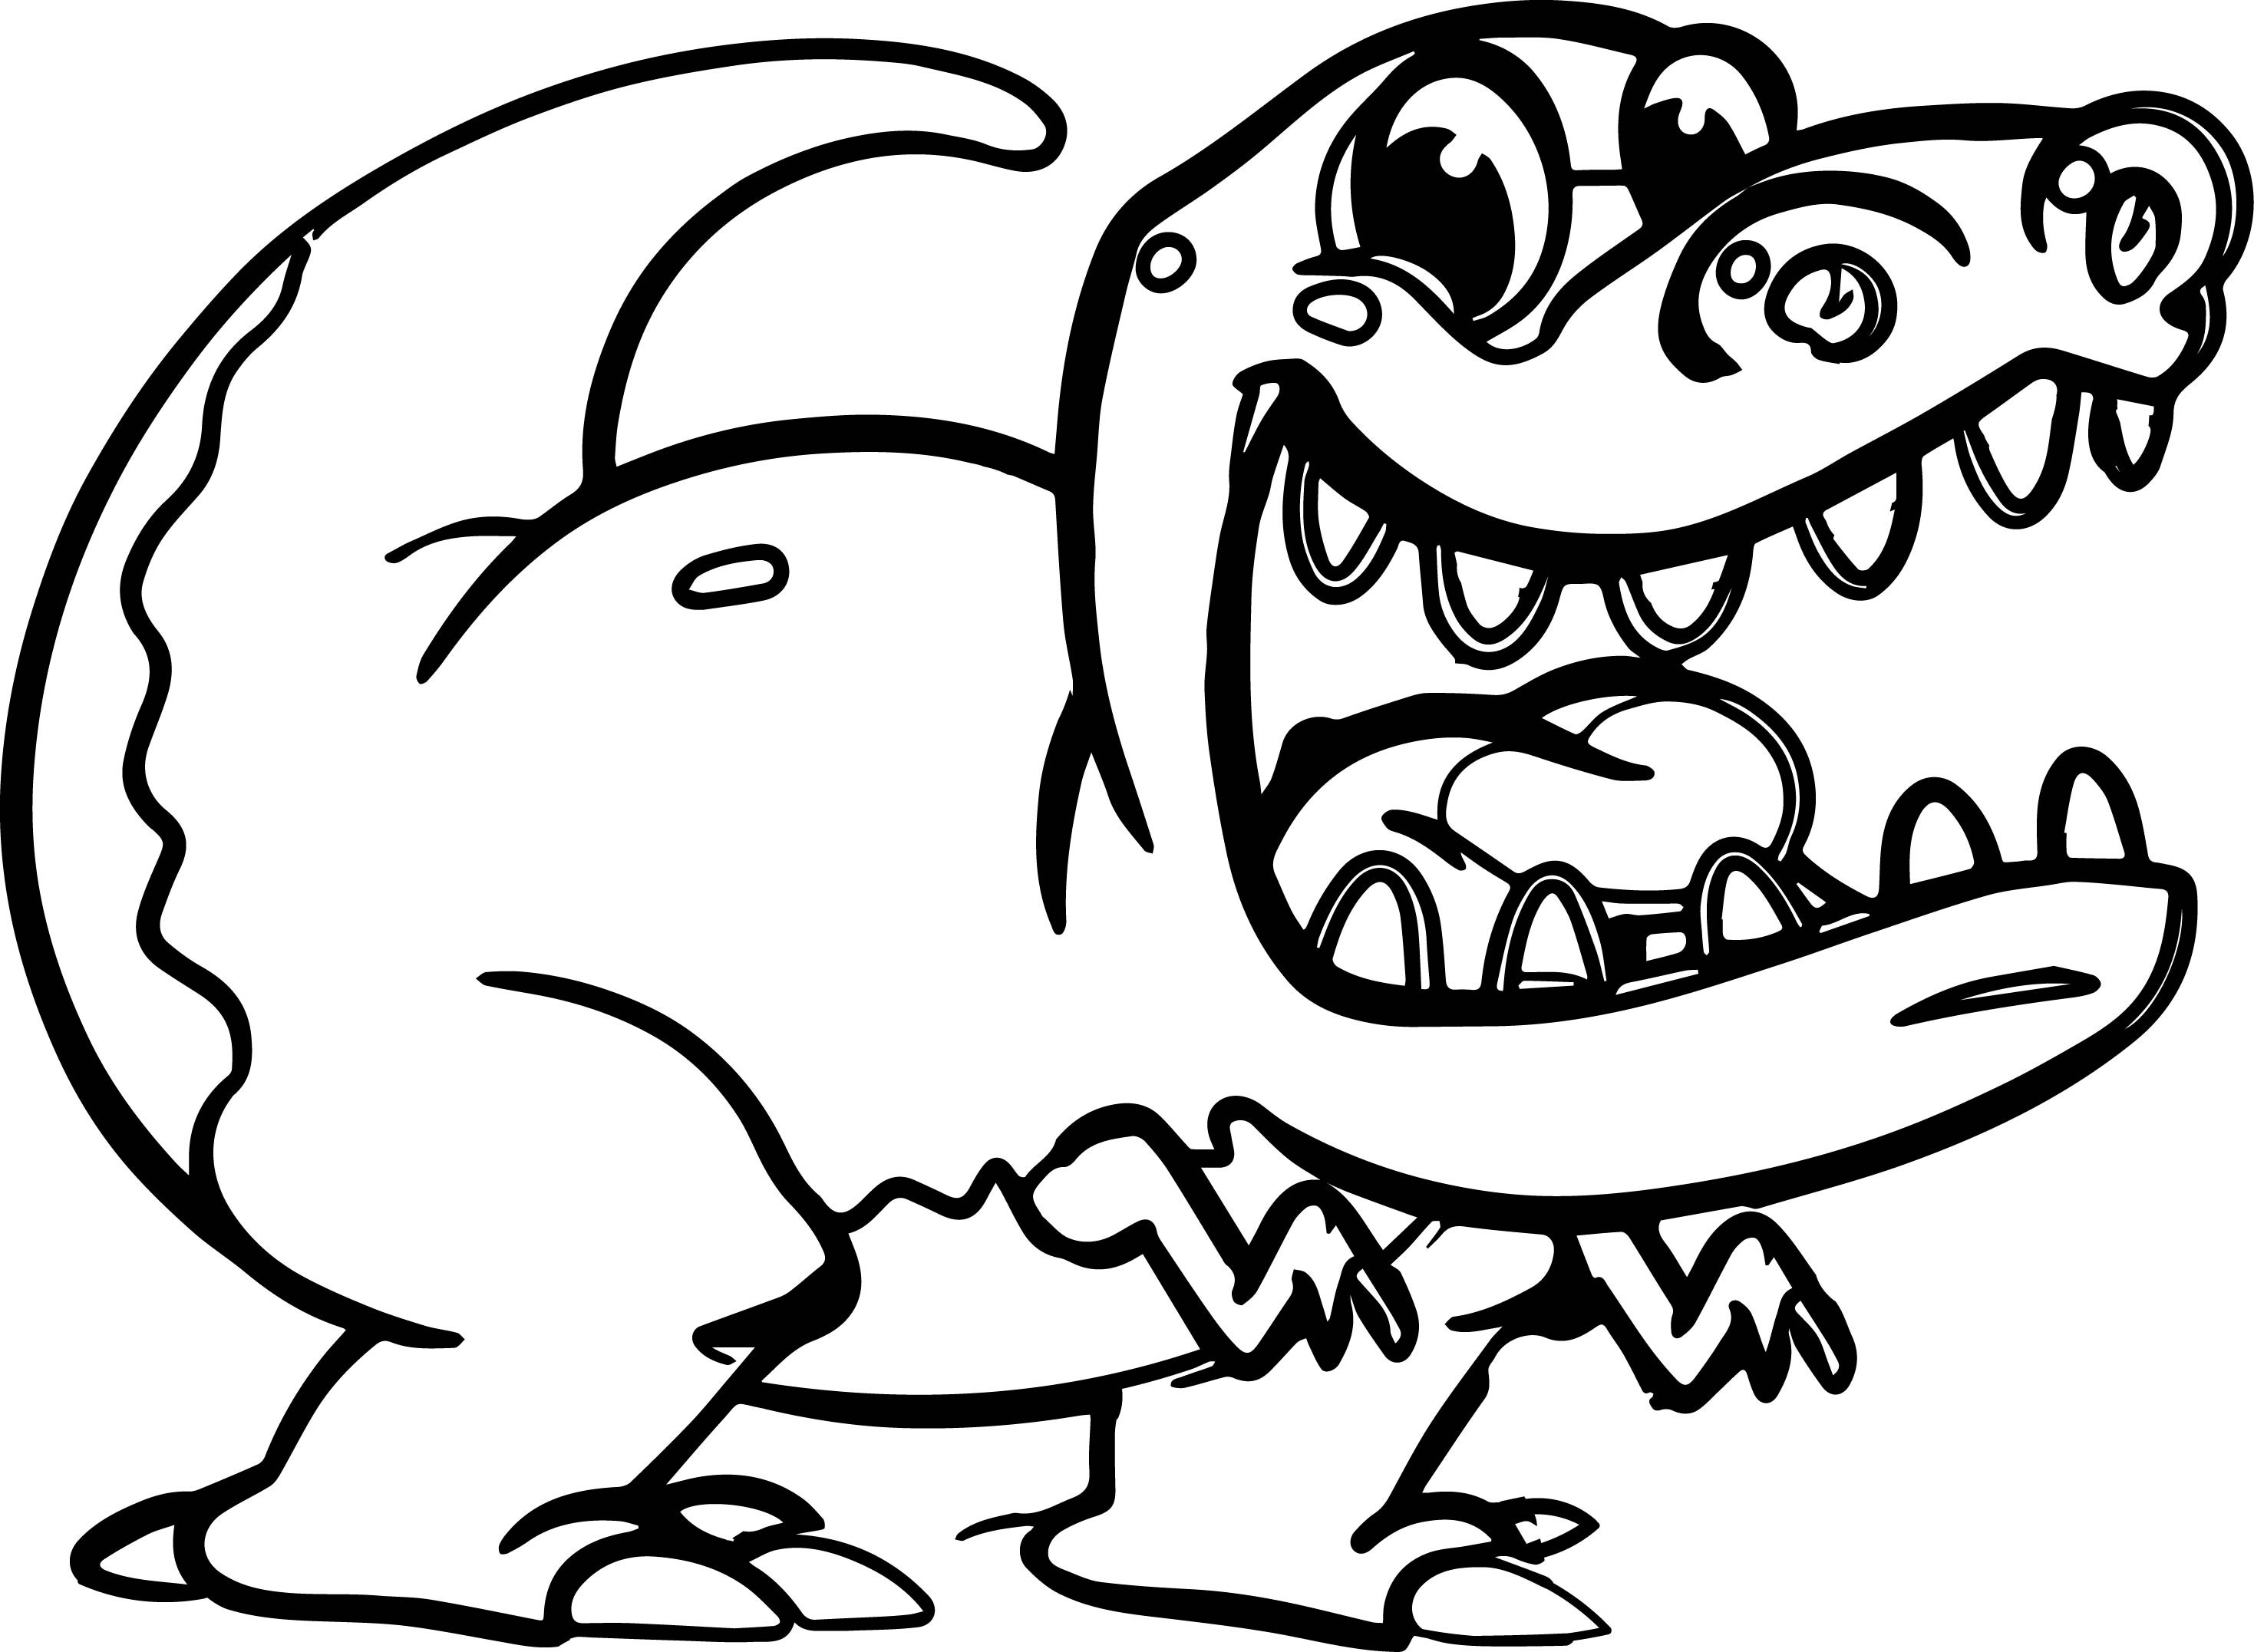 2937x2153 Angry Tyrannosaurus Rex Coloring Pages For Kids Luxury Morphle